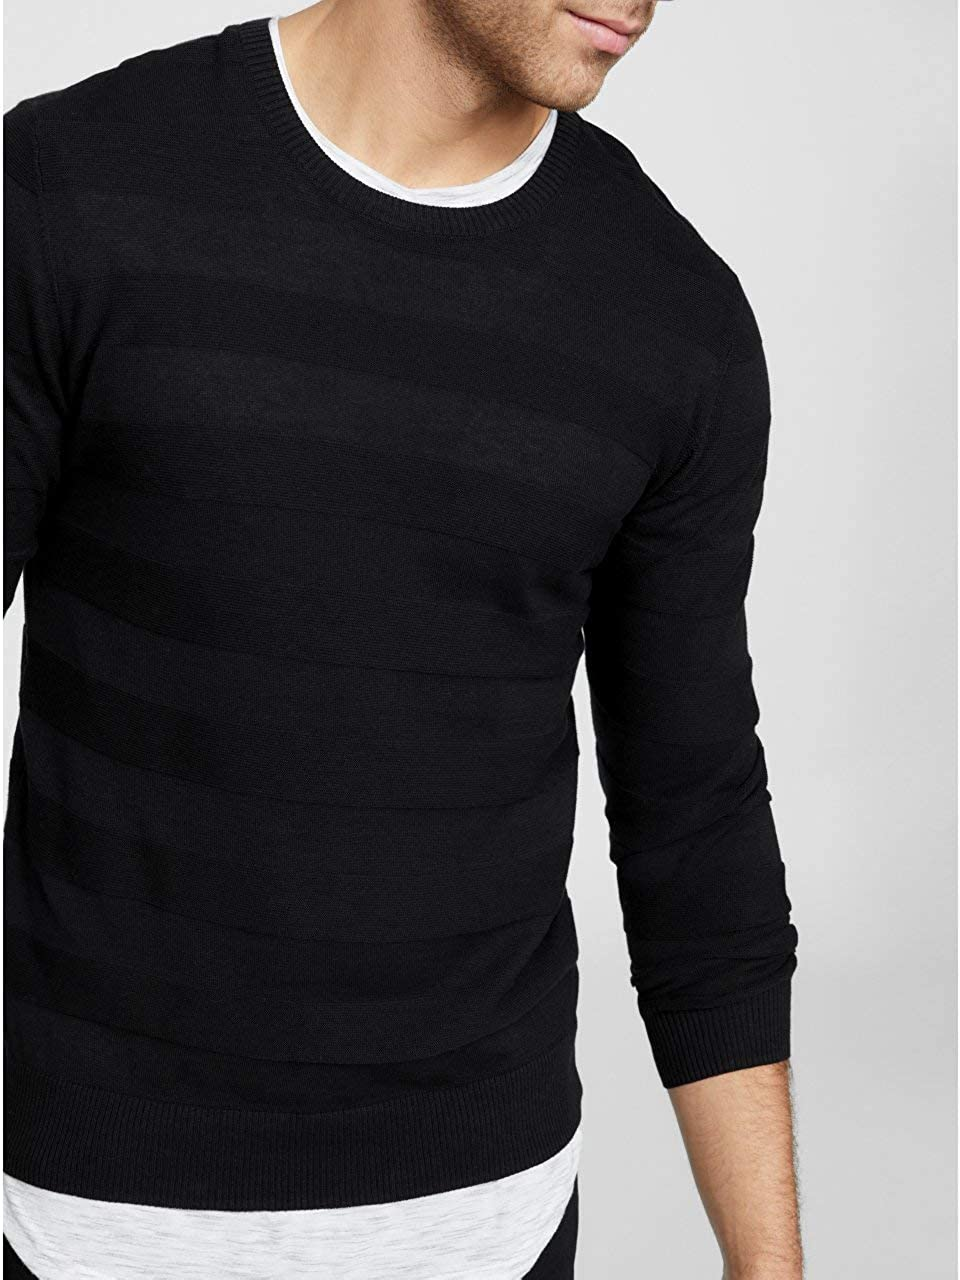 G by GUESS Mens Agnes Crewneck Sweater